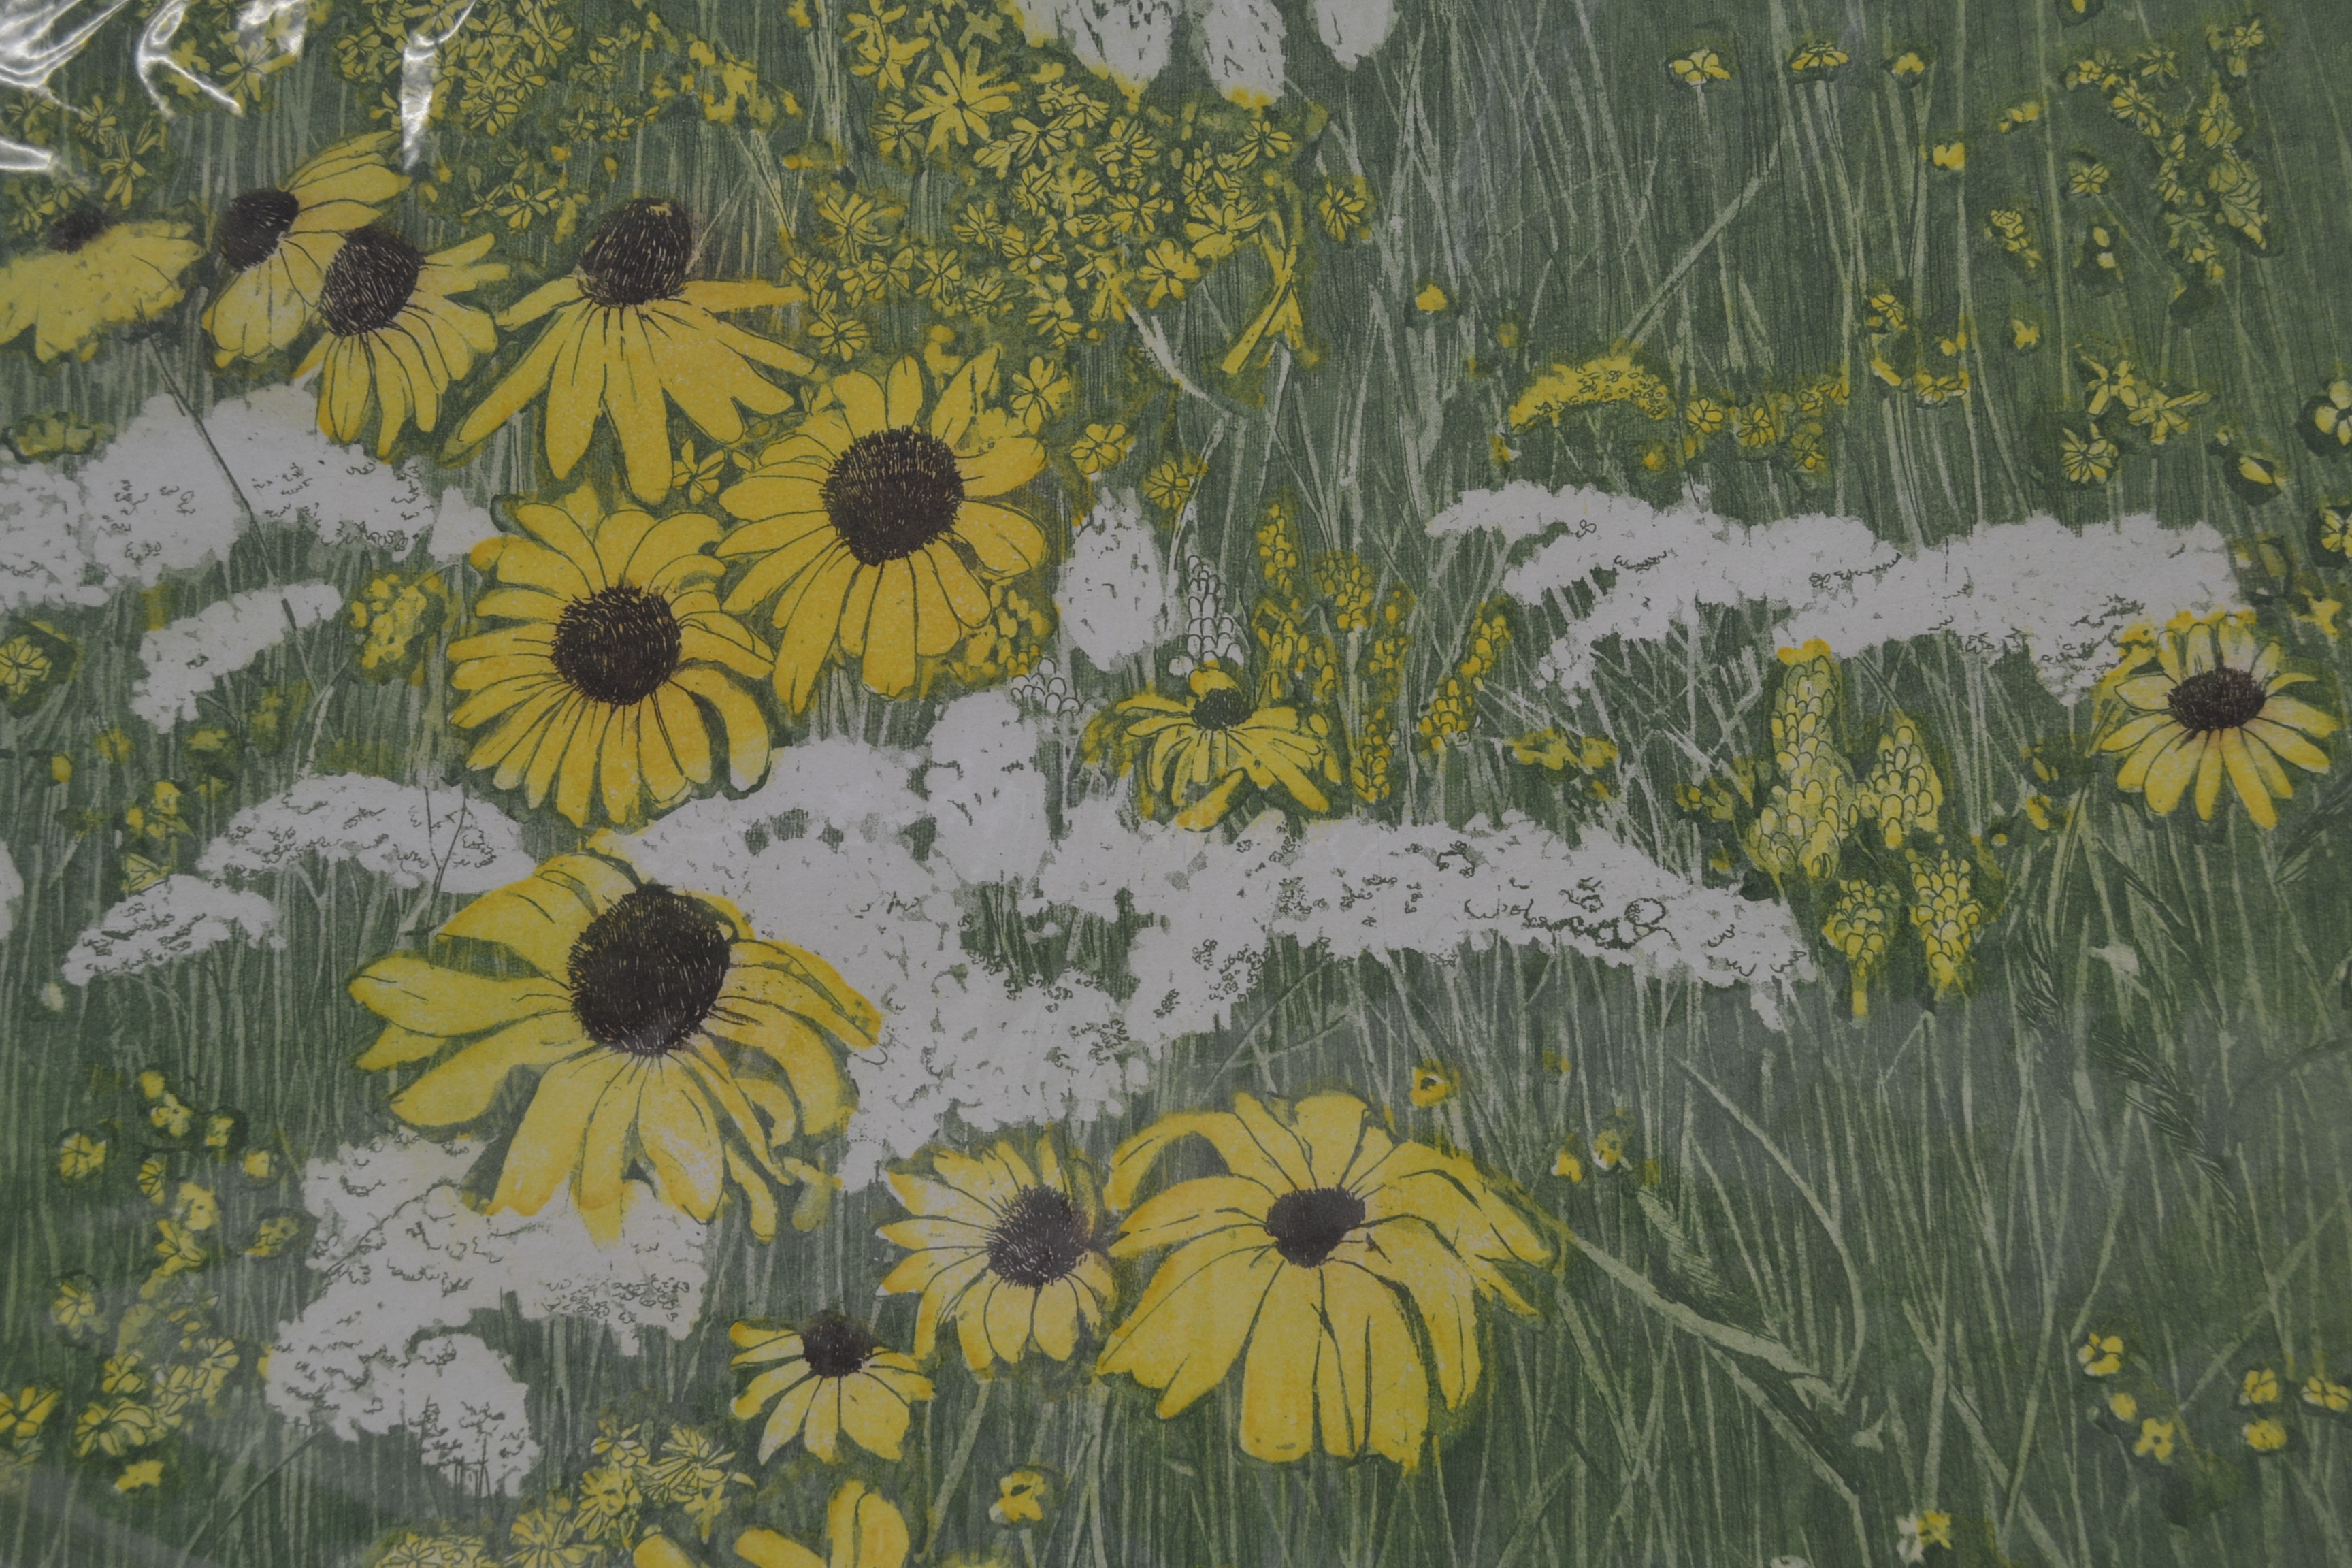 Lot 2112 - Collection of signed etchings, including artist proofs, by Joan Johns, Phyllis Johnson,